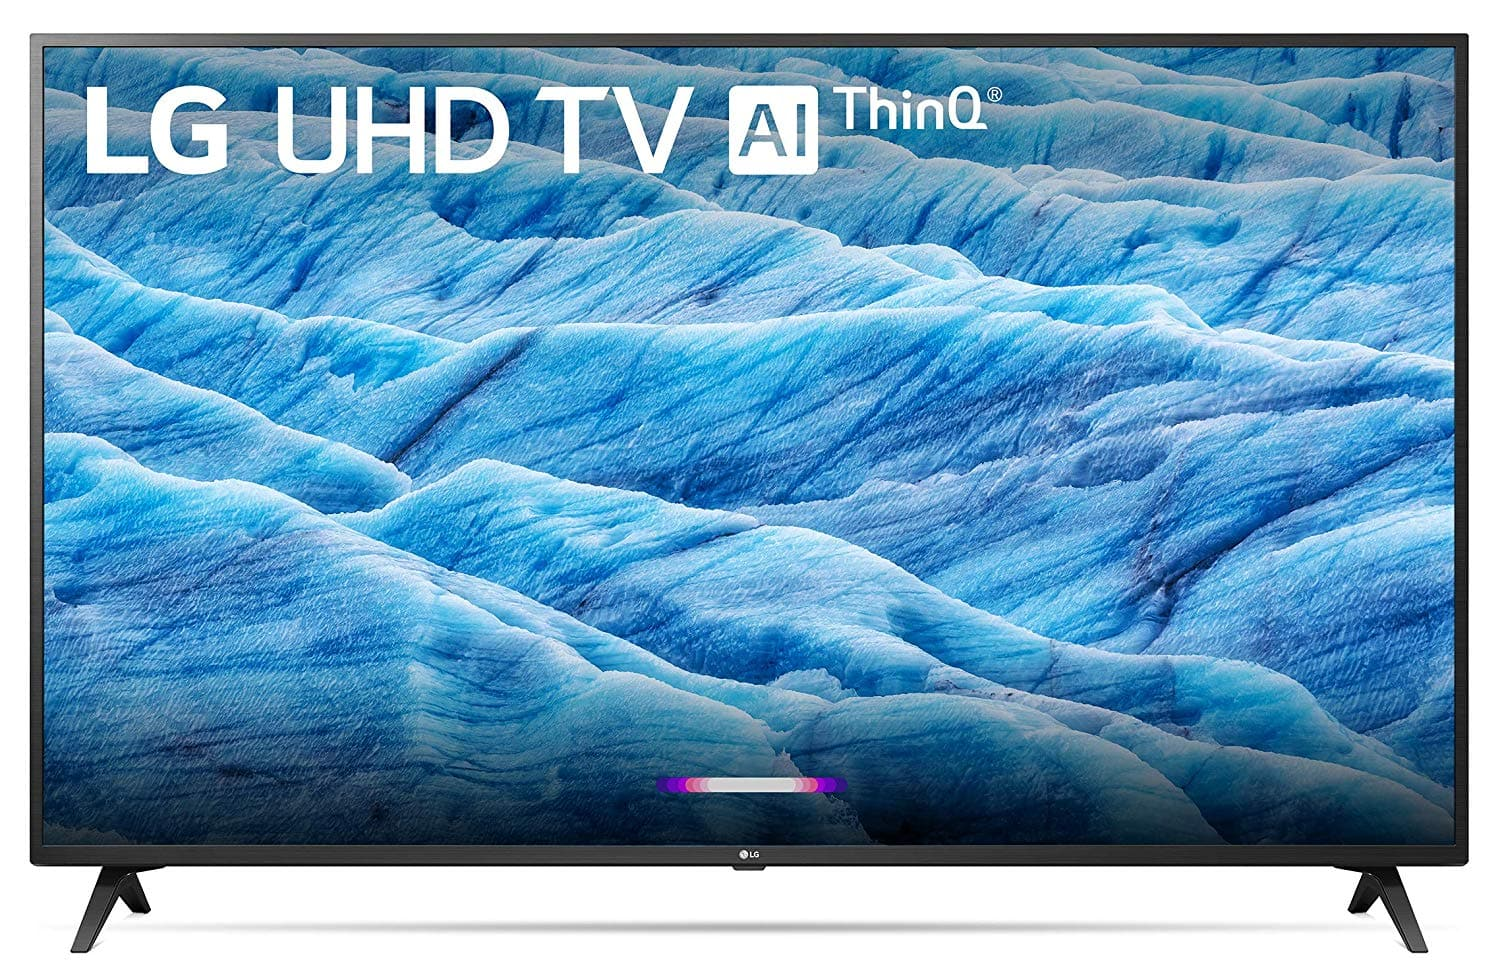 "LG UM7300PUA 4K UHD HDR Smart LED HDTV w/ AI ThinQ (2019 Model): 43"" $237.15, 49"" $294.44, 65"" $616.99 + Free Shipping @ Rakuten"